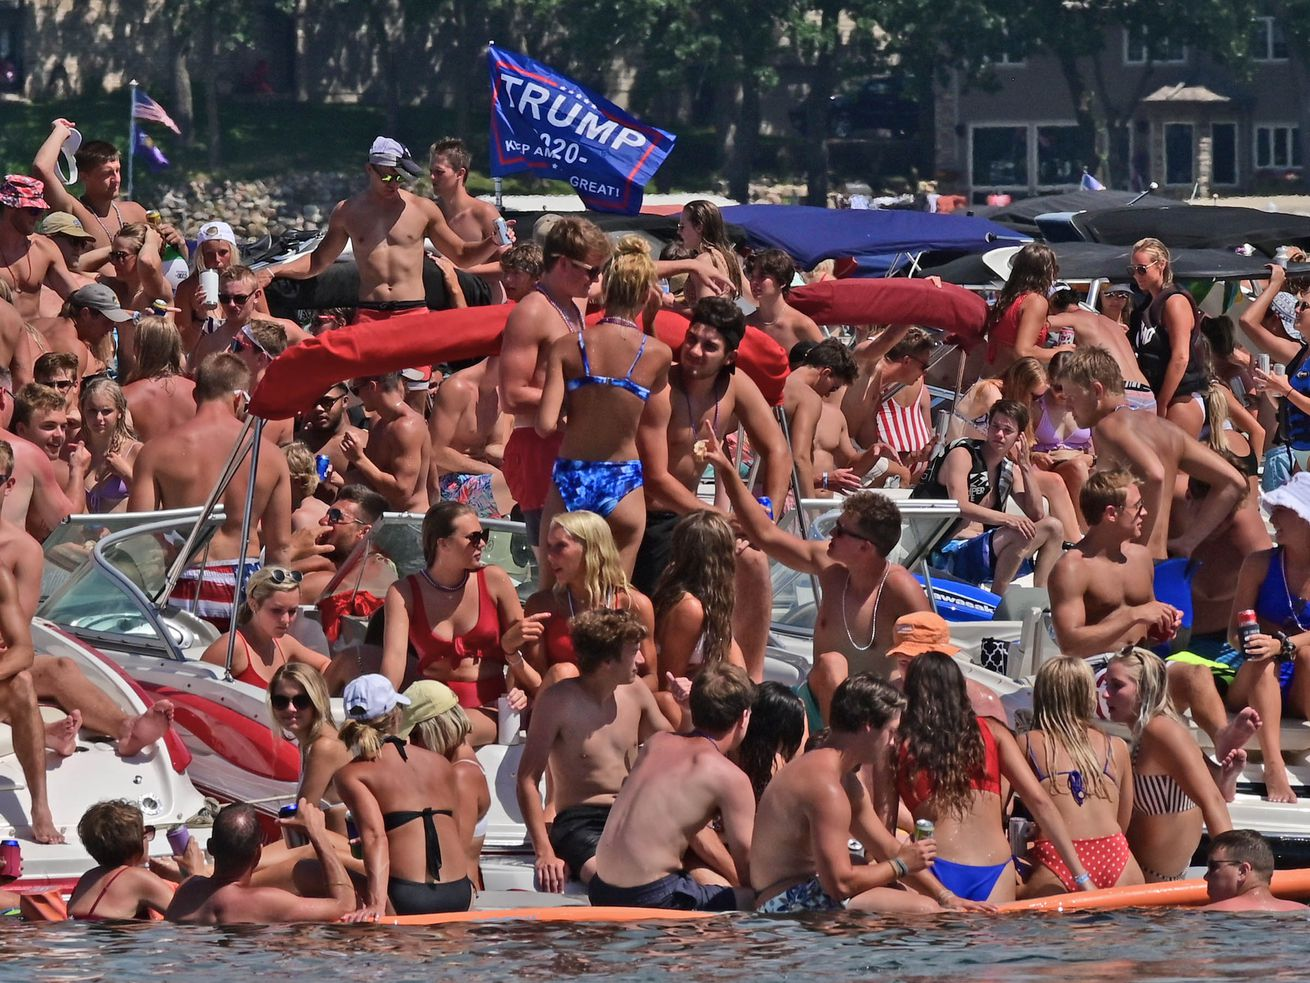 A crowd of people in bathing suits floating on rafts on a lake.